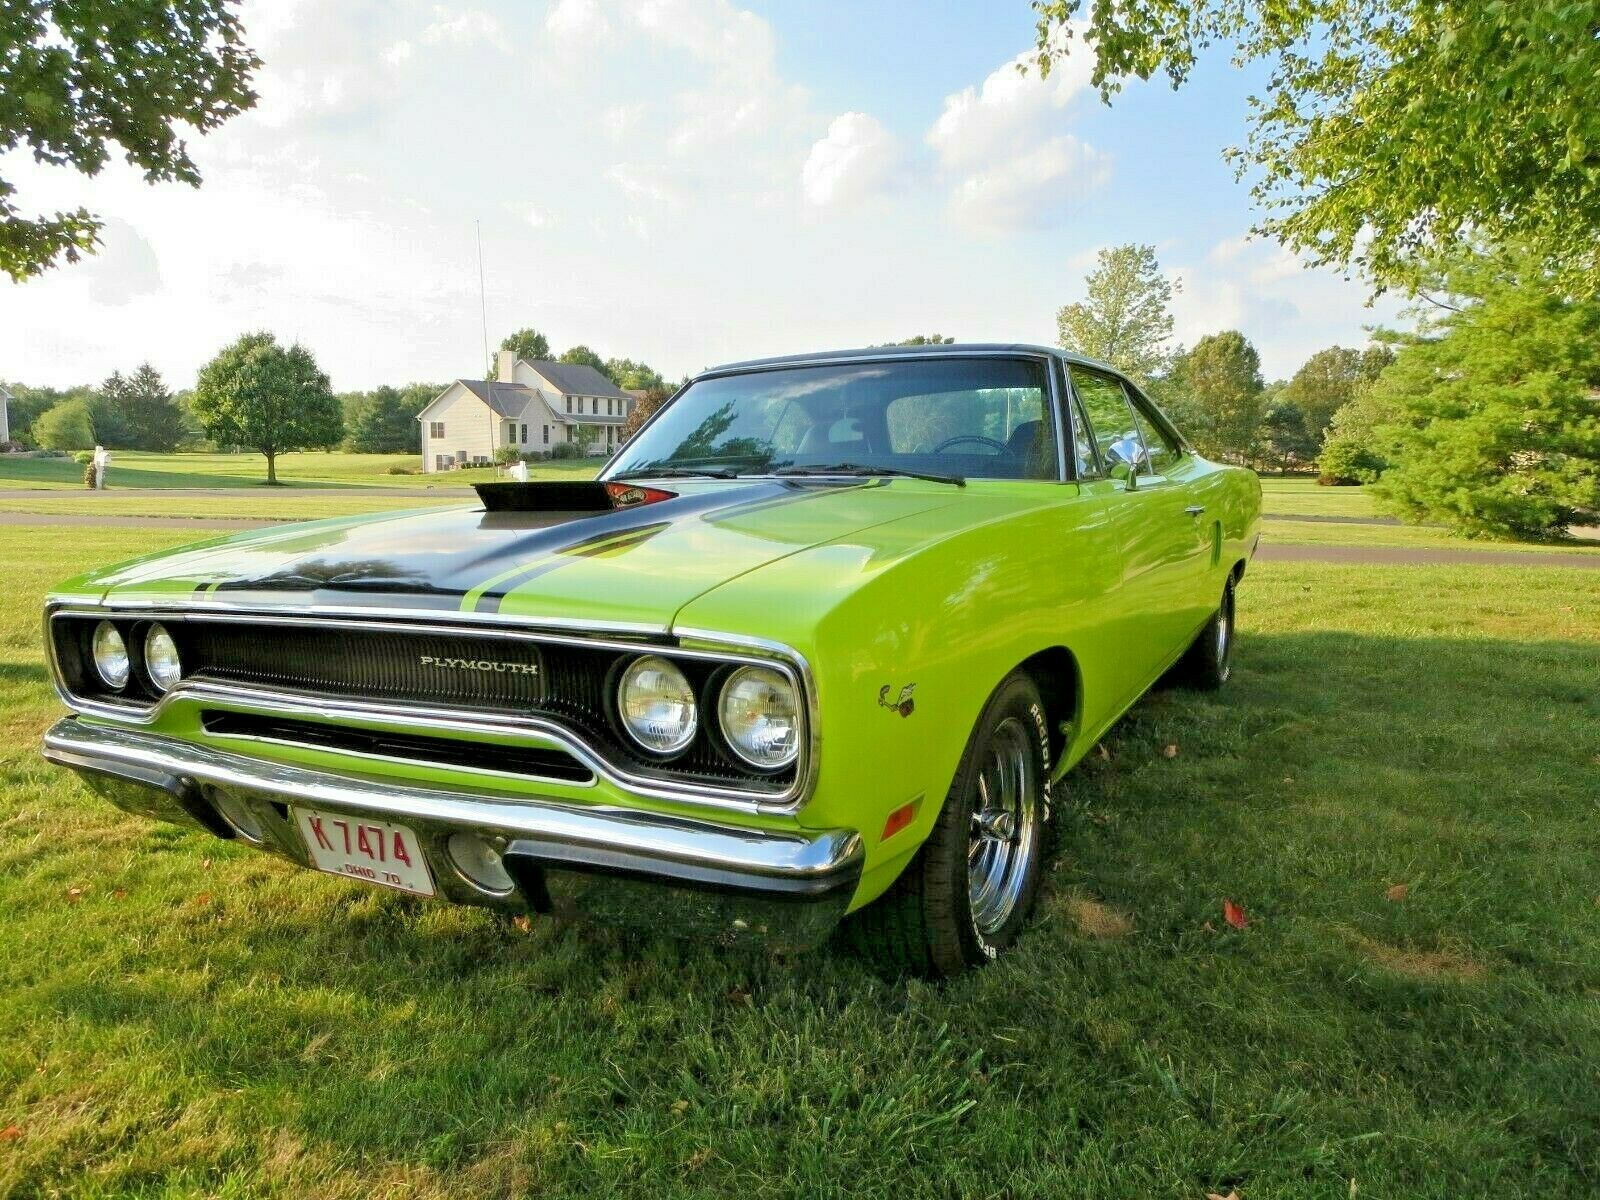 1970 Plymouth Road Runner True RM23 Car 440 Big Block with Air Grabber Automatic